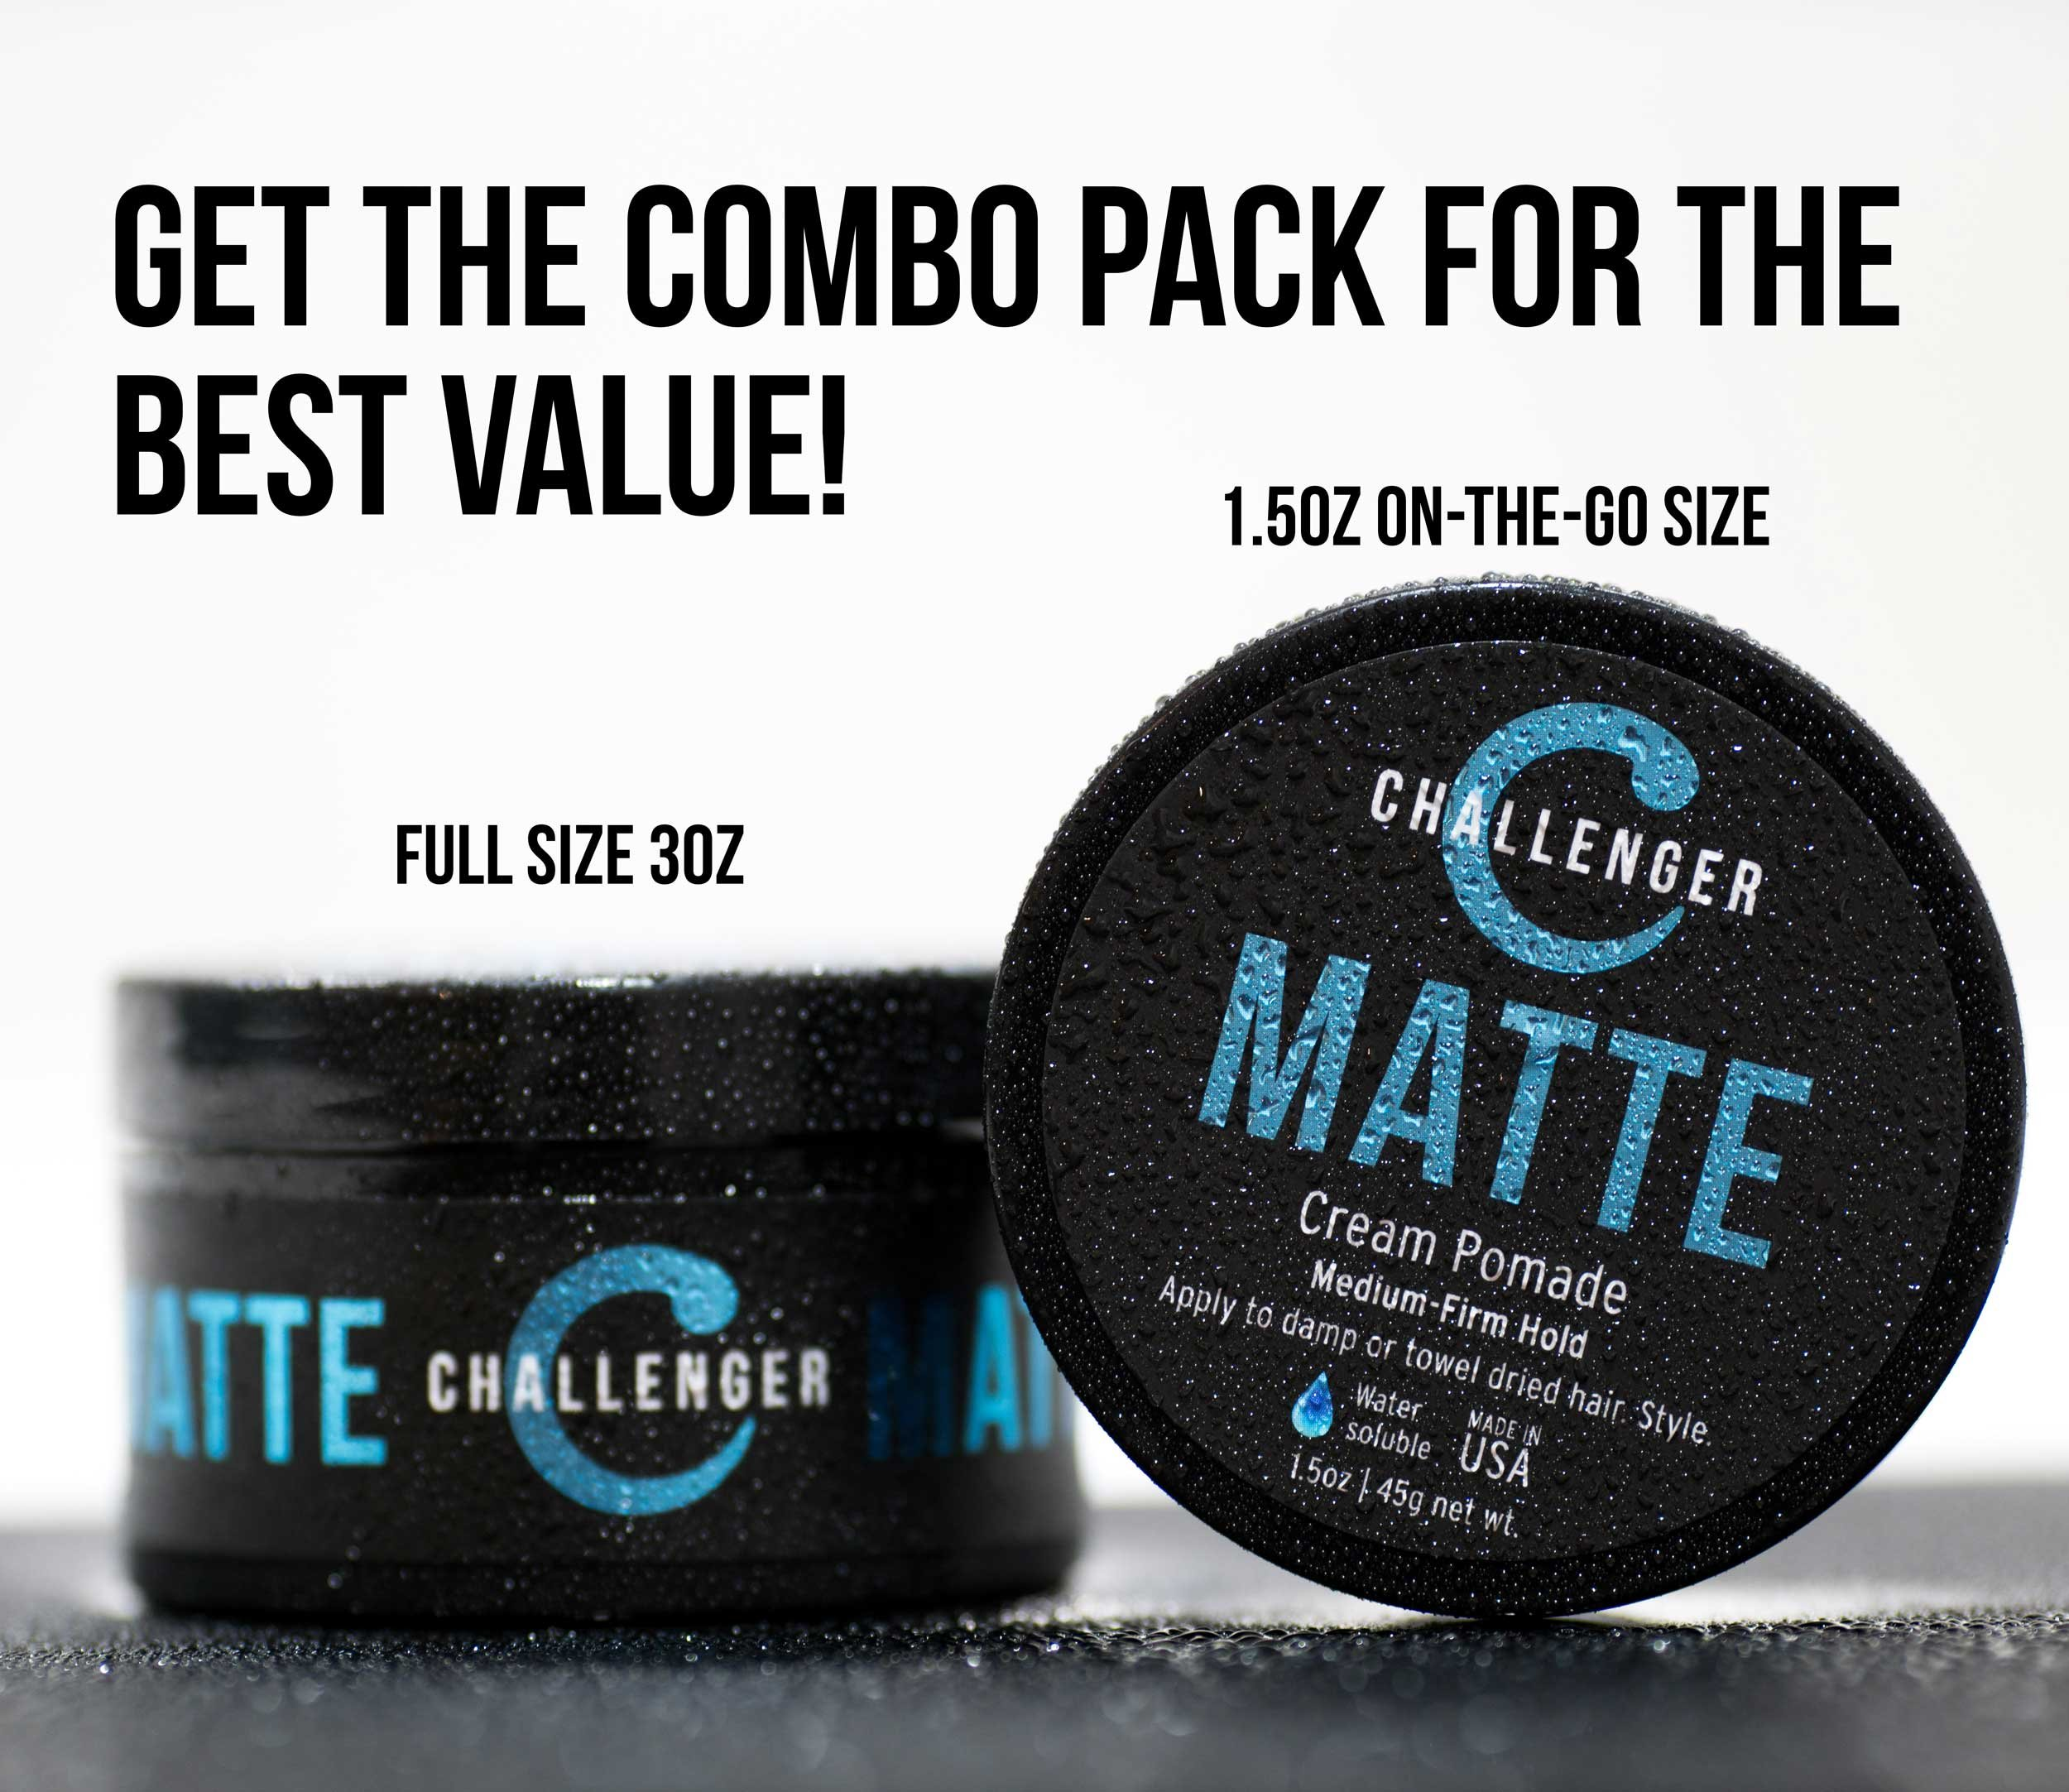 Matte Cream Pomade - Challenger 3oz - Medium Firm Hold - Water Based, Clean & Subtle Scent, Travel Friendly. Men's Hair Wax, Fiber, Clay, Paste, Styling Cream All In One by Challenger (Image #6)